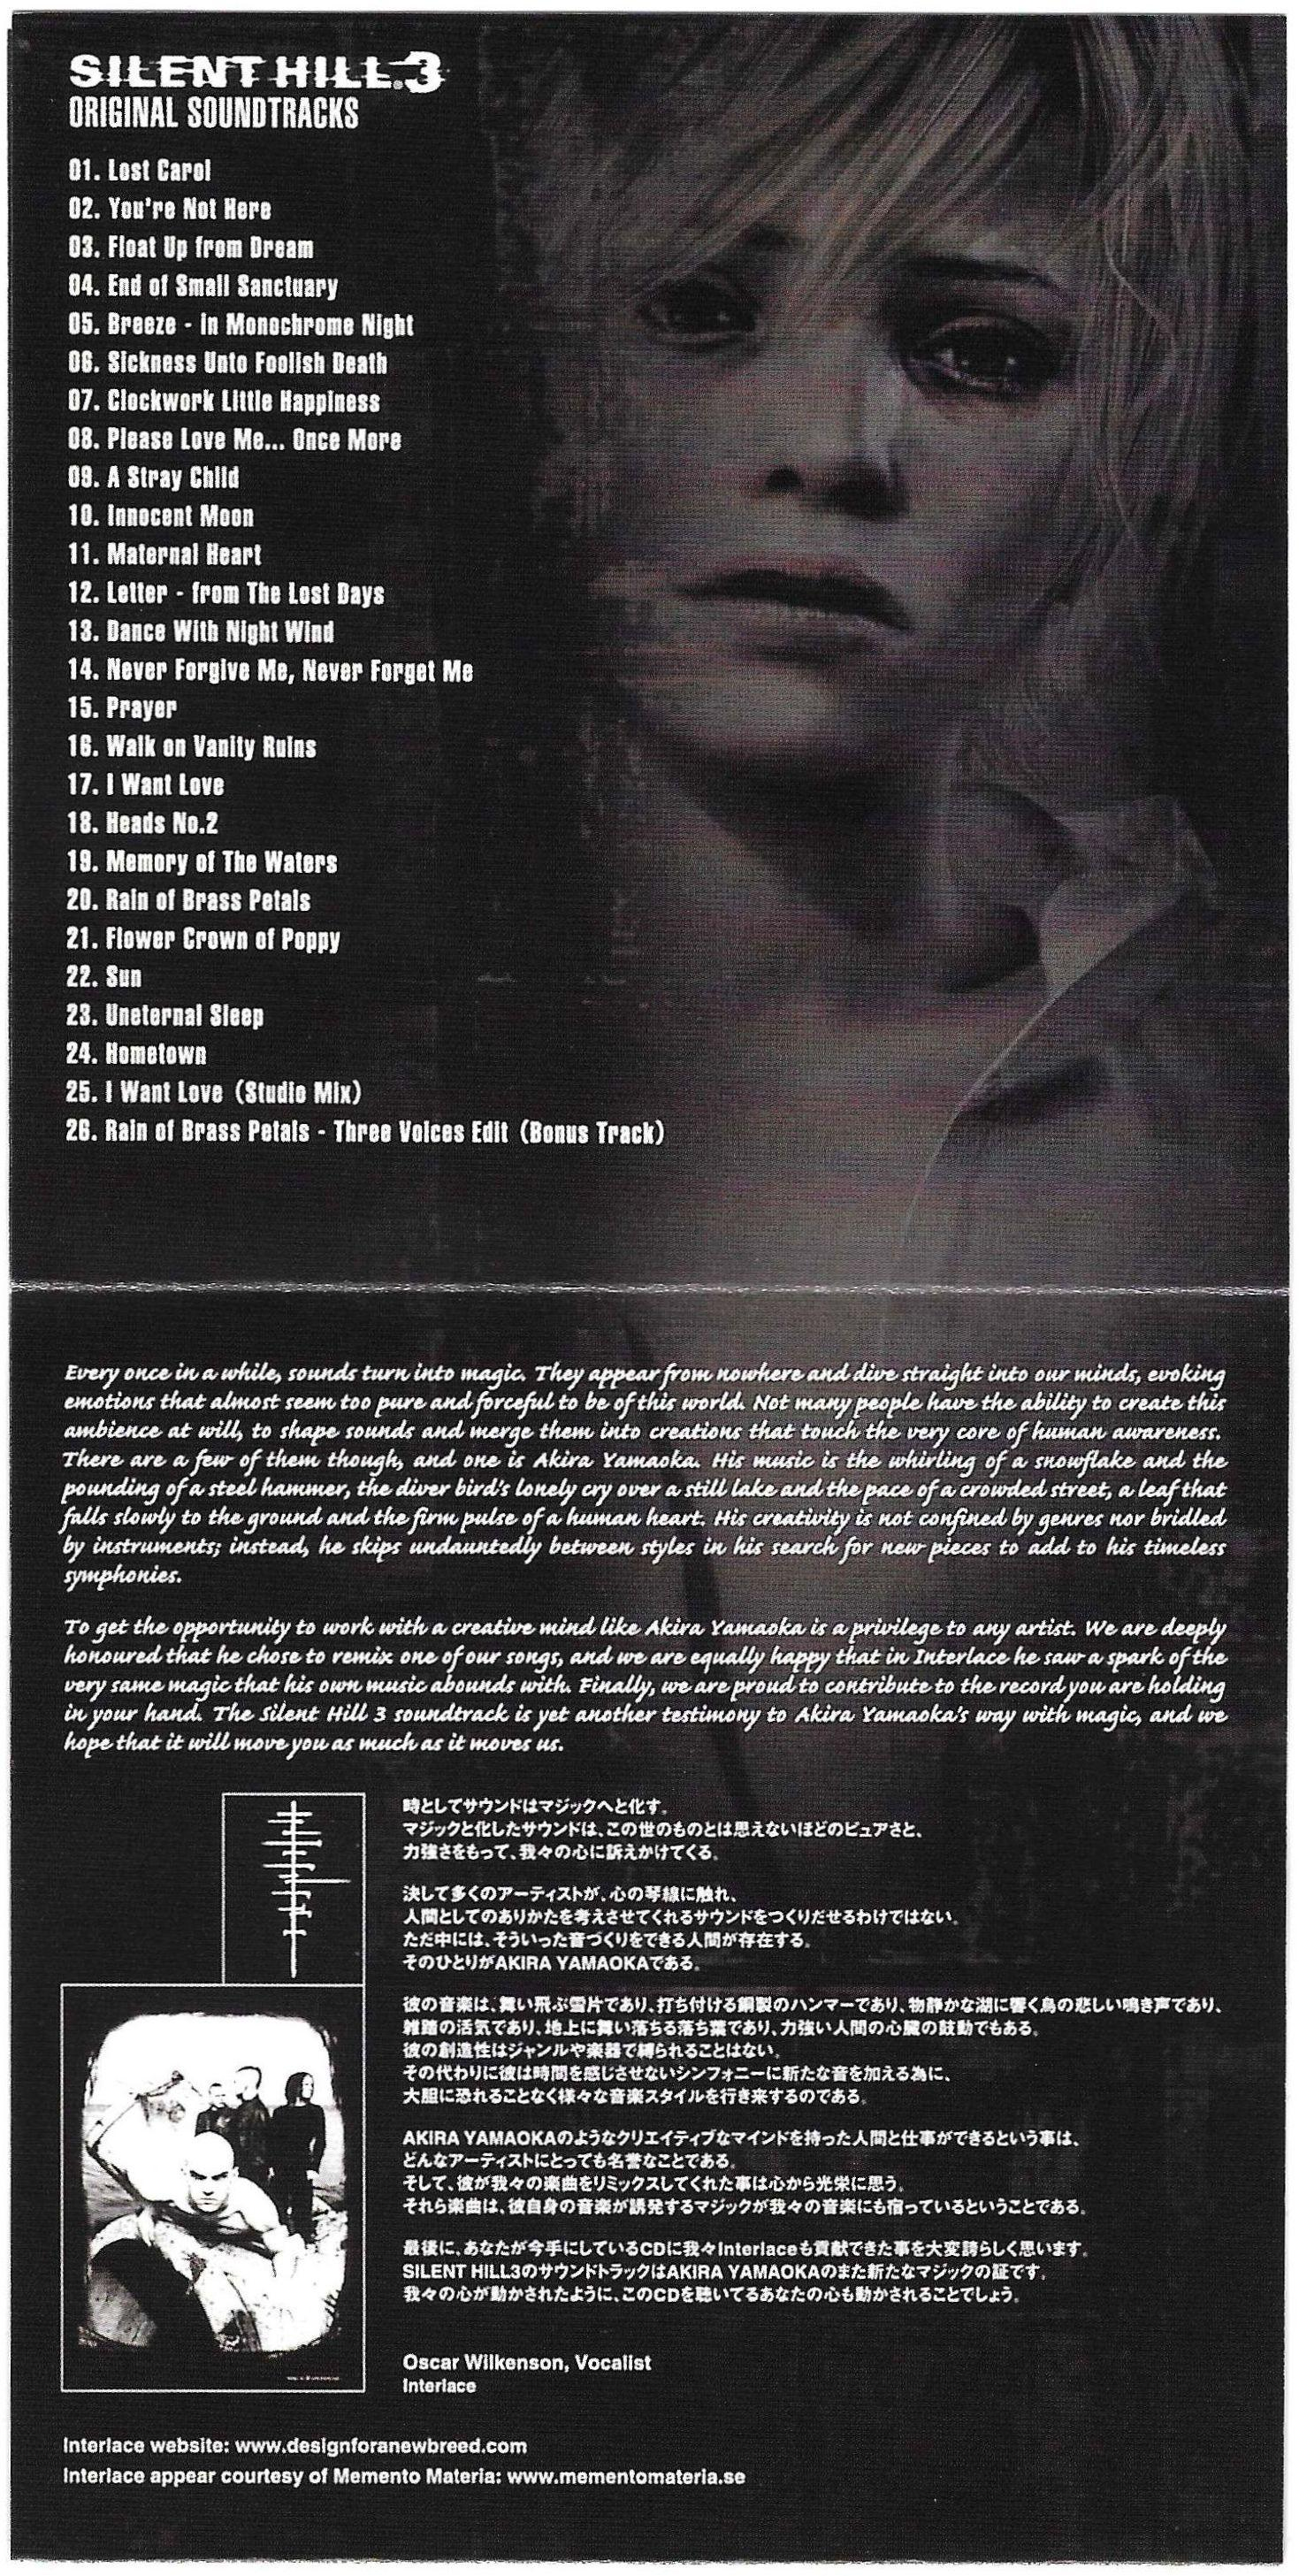 Silent Hill 3 Original Soundtrack Game Music Submissions Emumovies